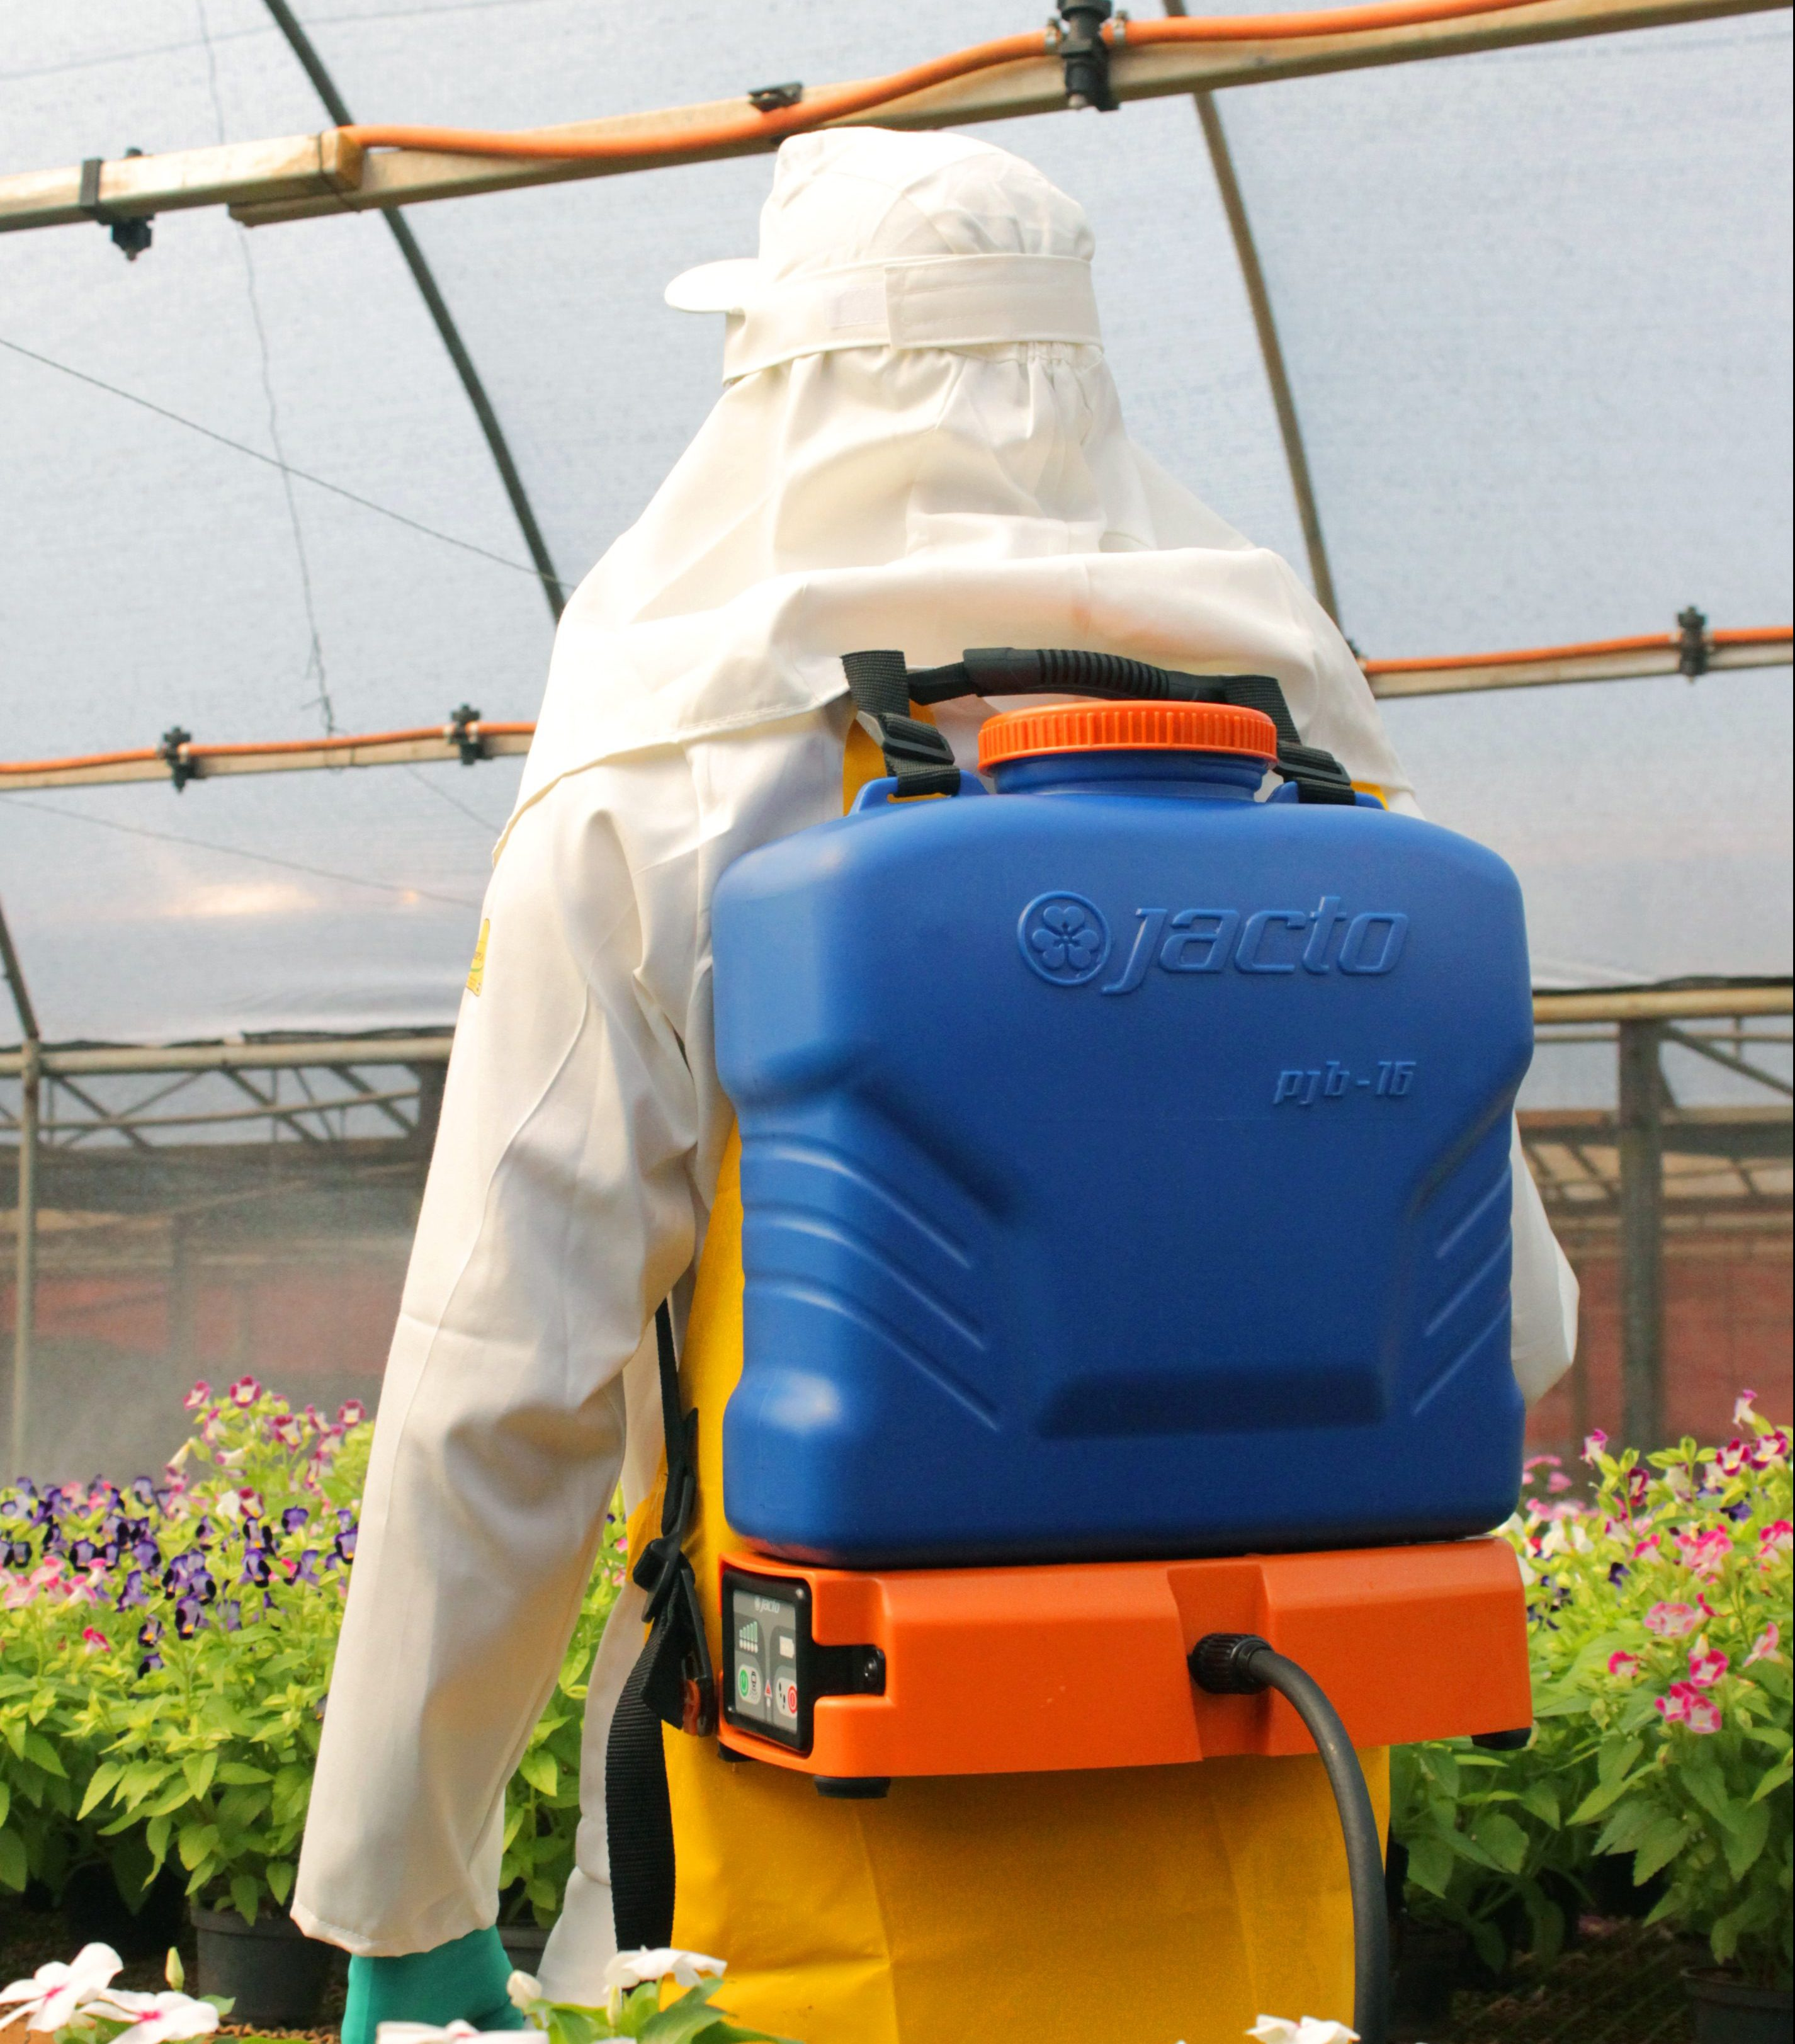 Perfect for everyday spraying needs